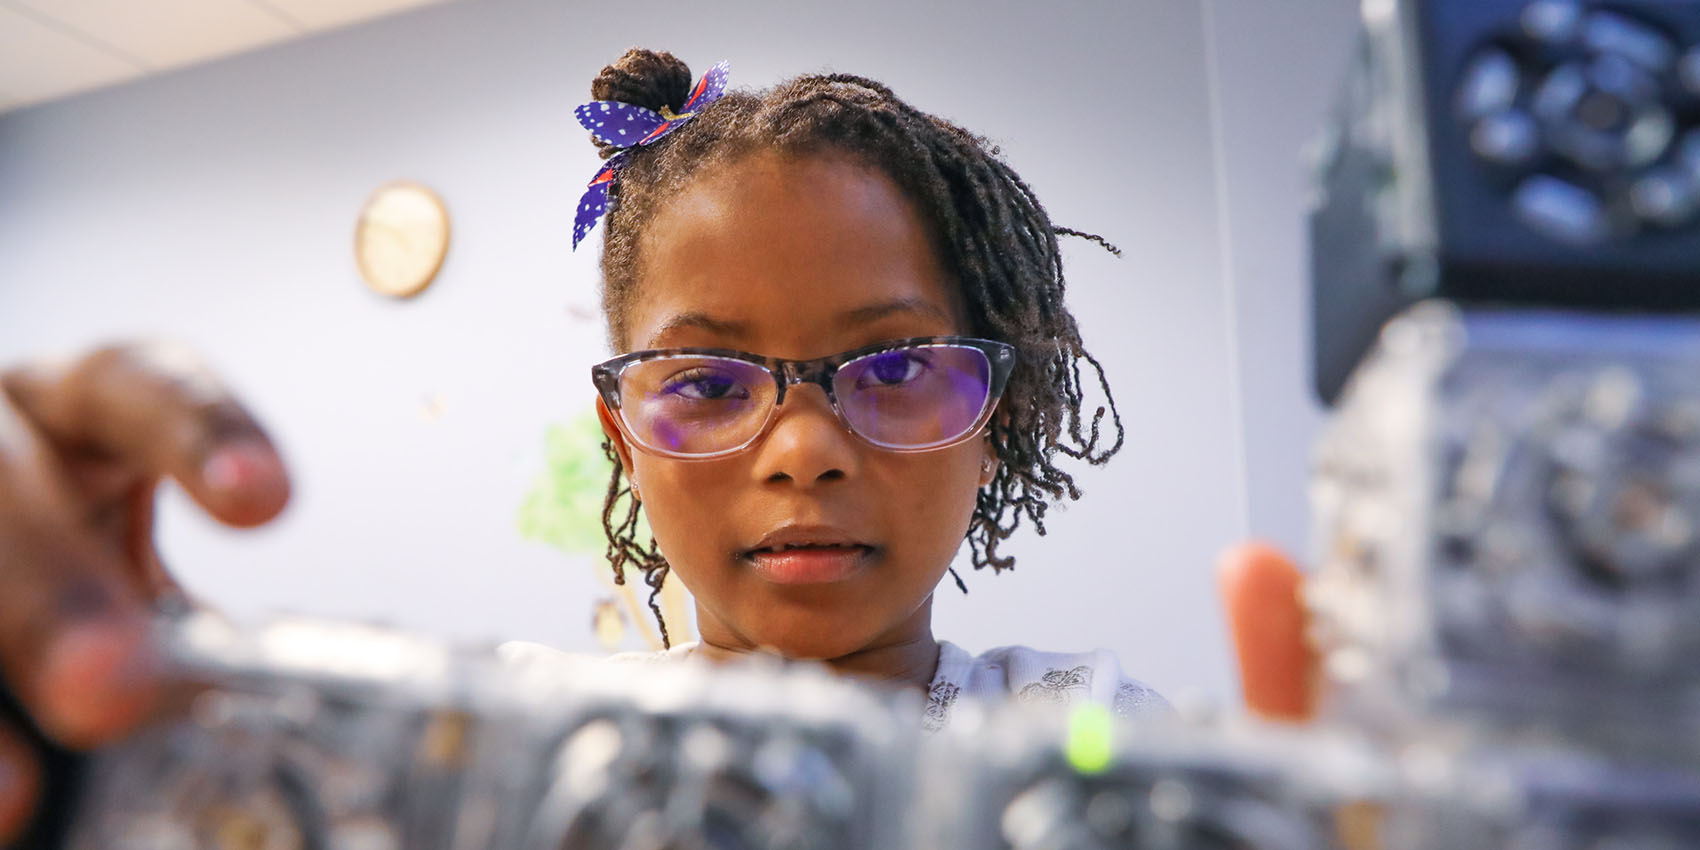 A child looks out from behind a structure she's building with modular robotic blocks